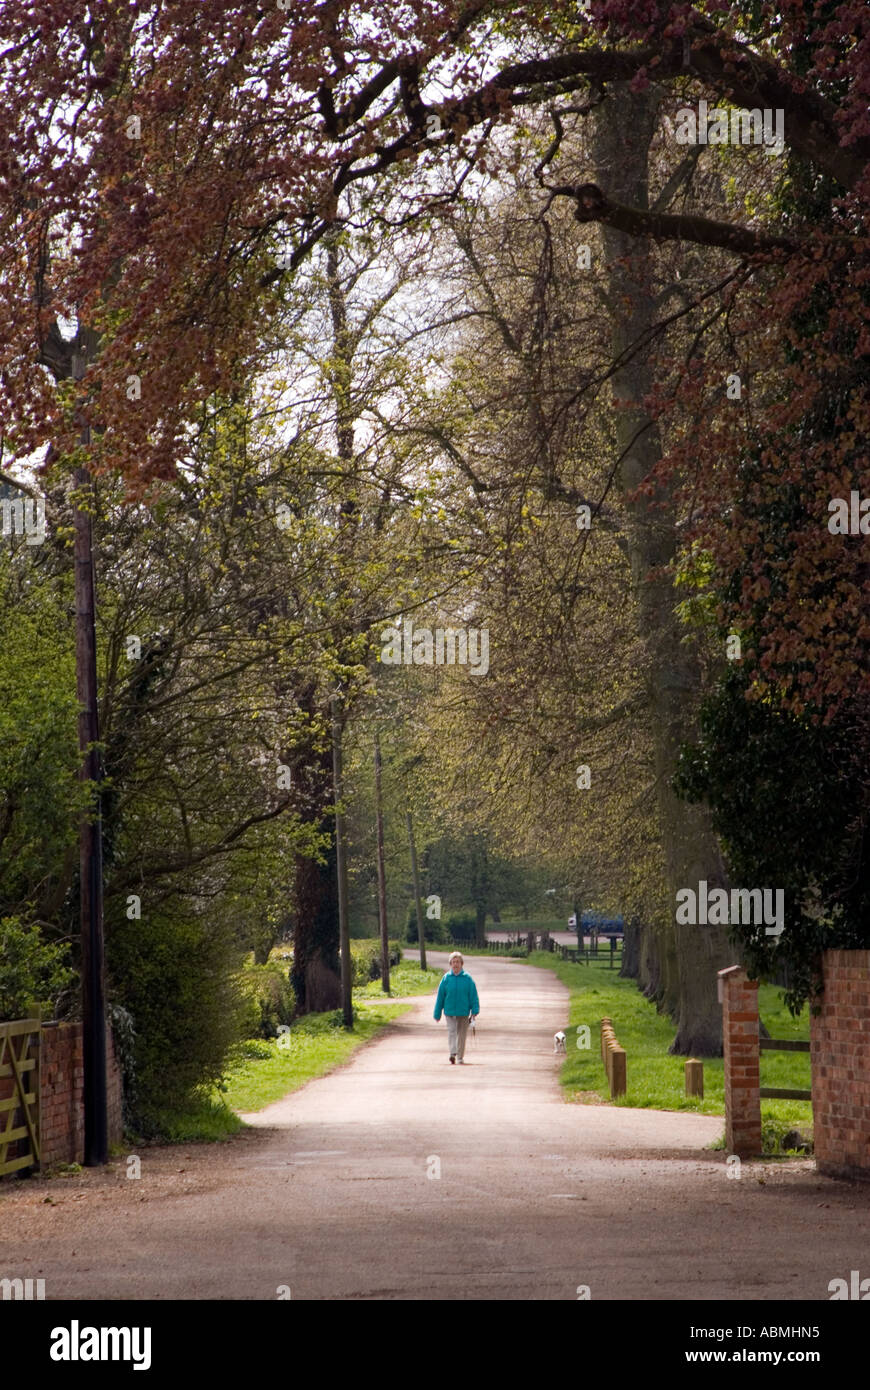 parks within the new city of Milton Keynes - Stock Image